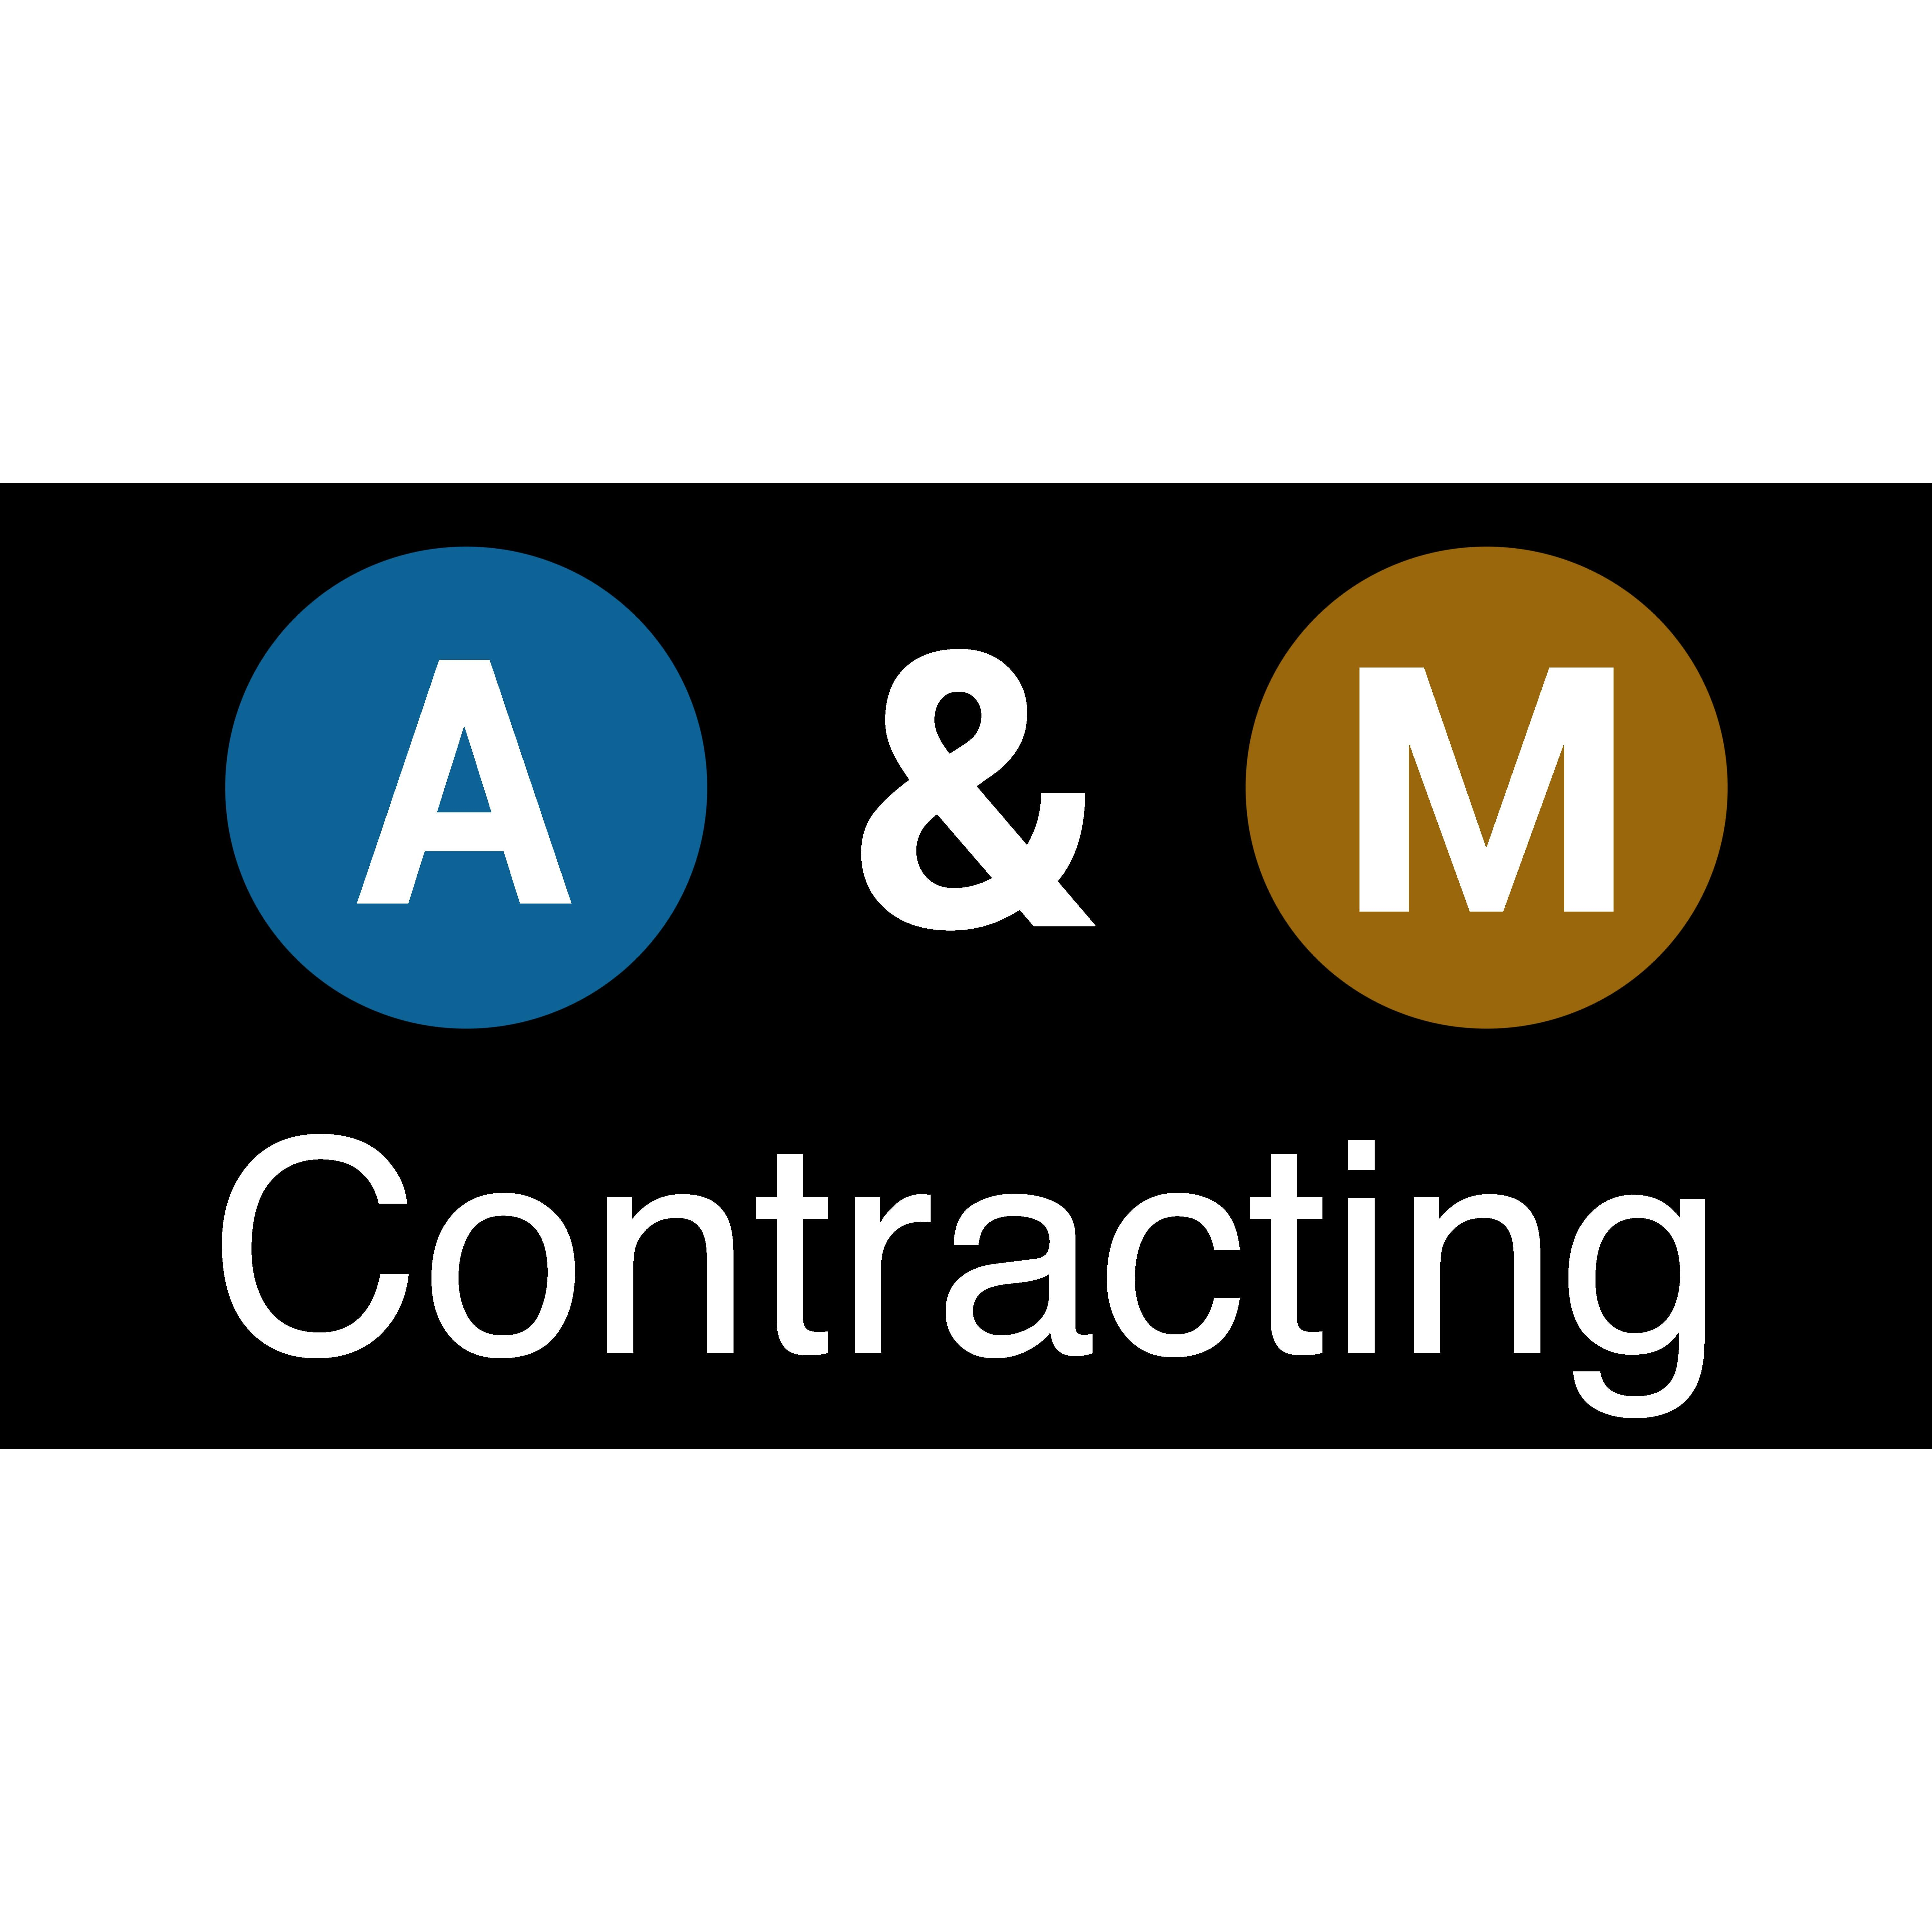 A & M Contracting